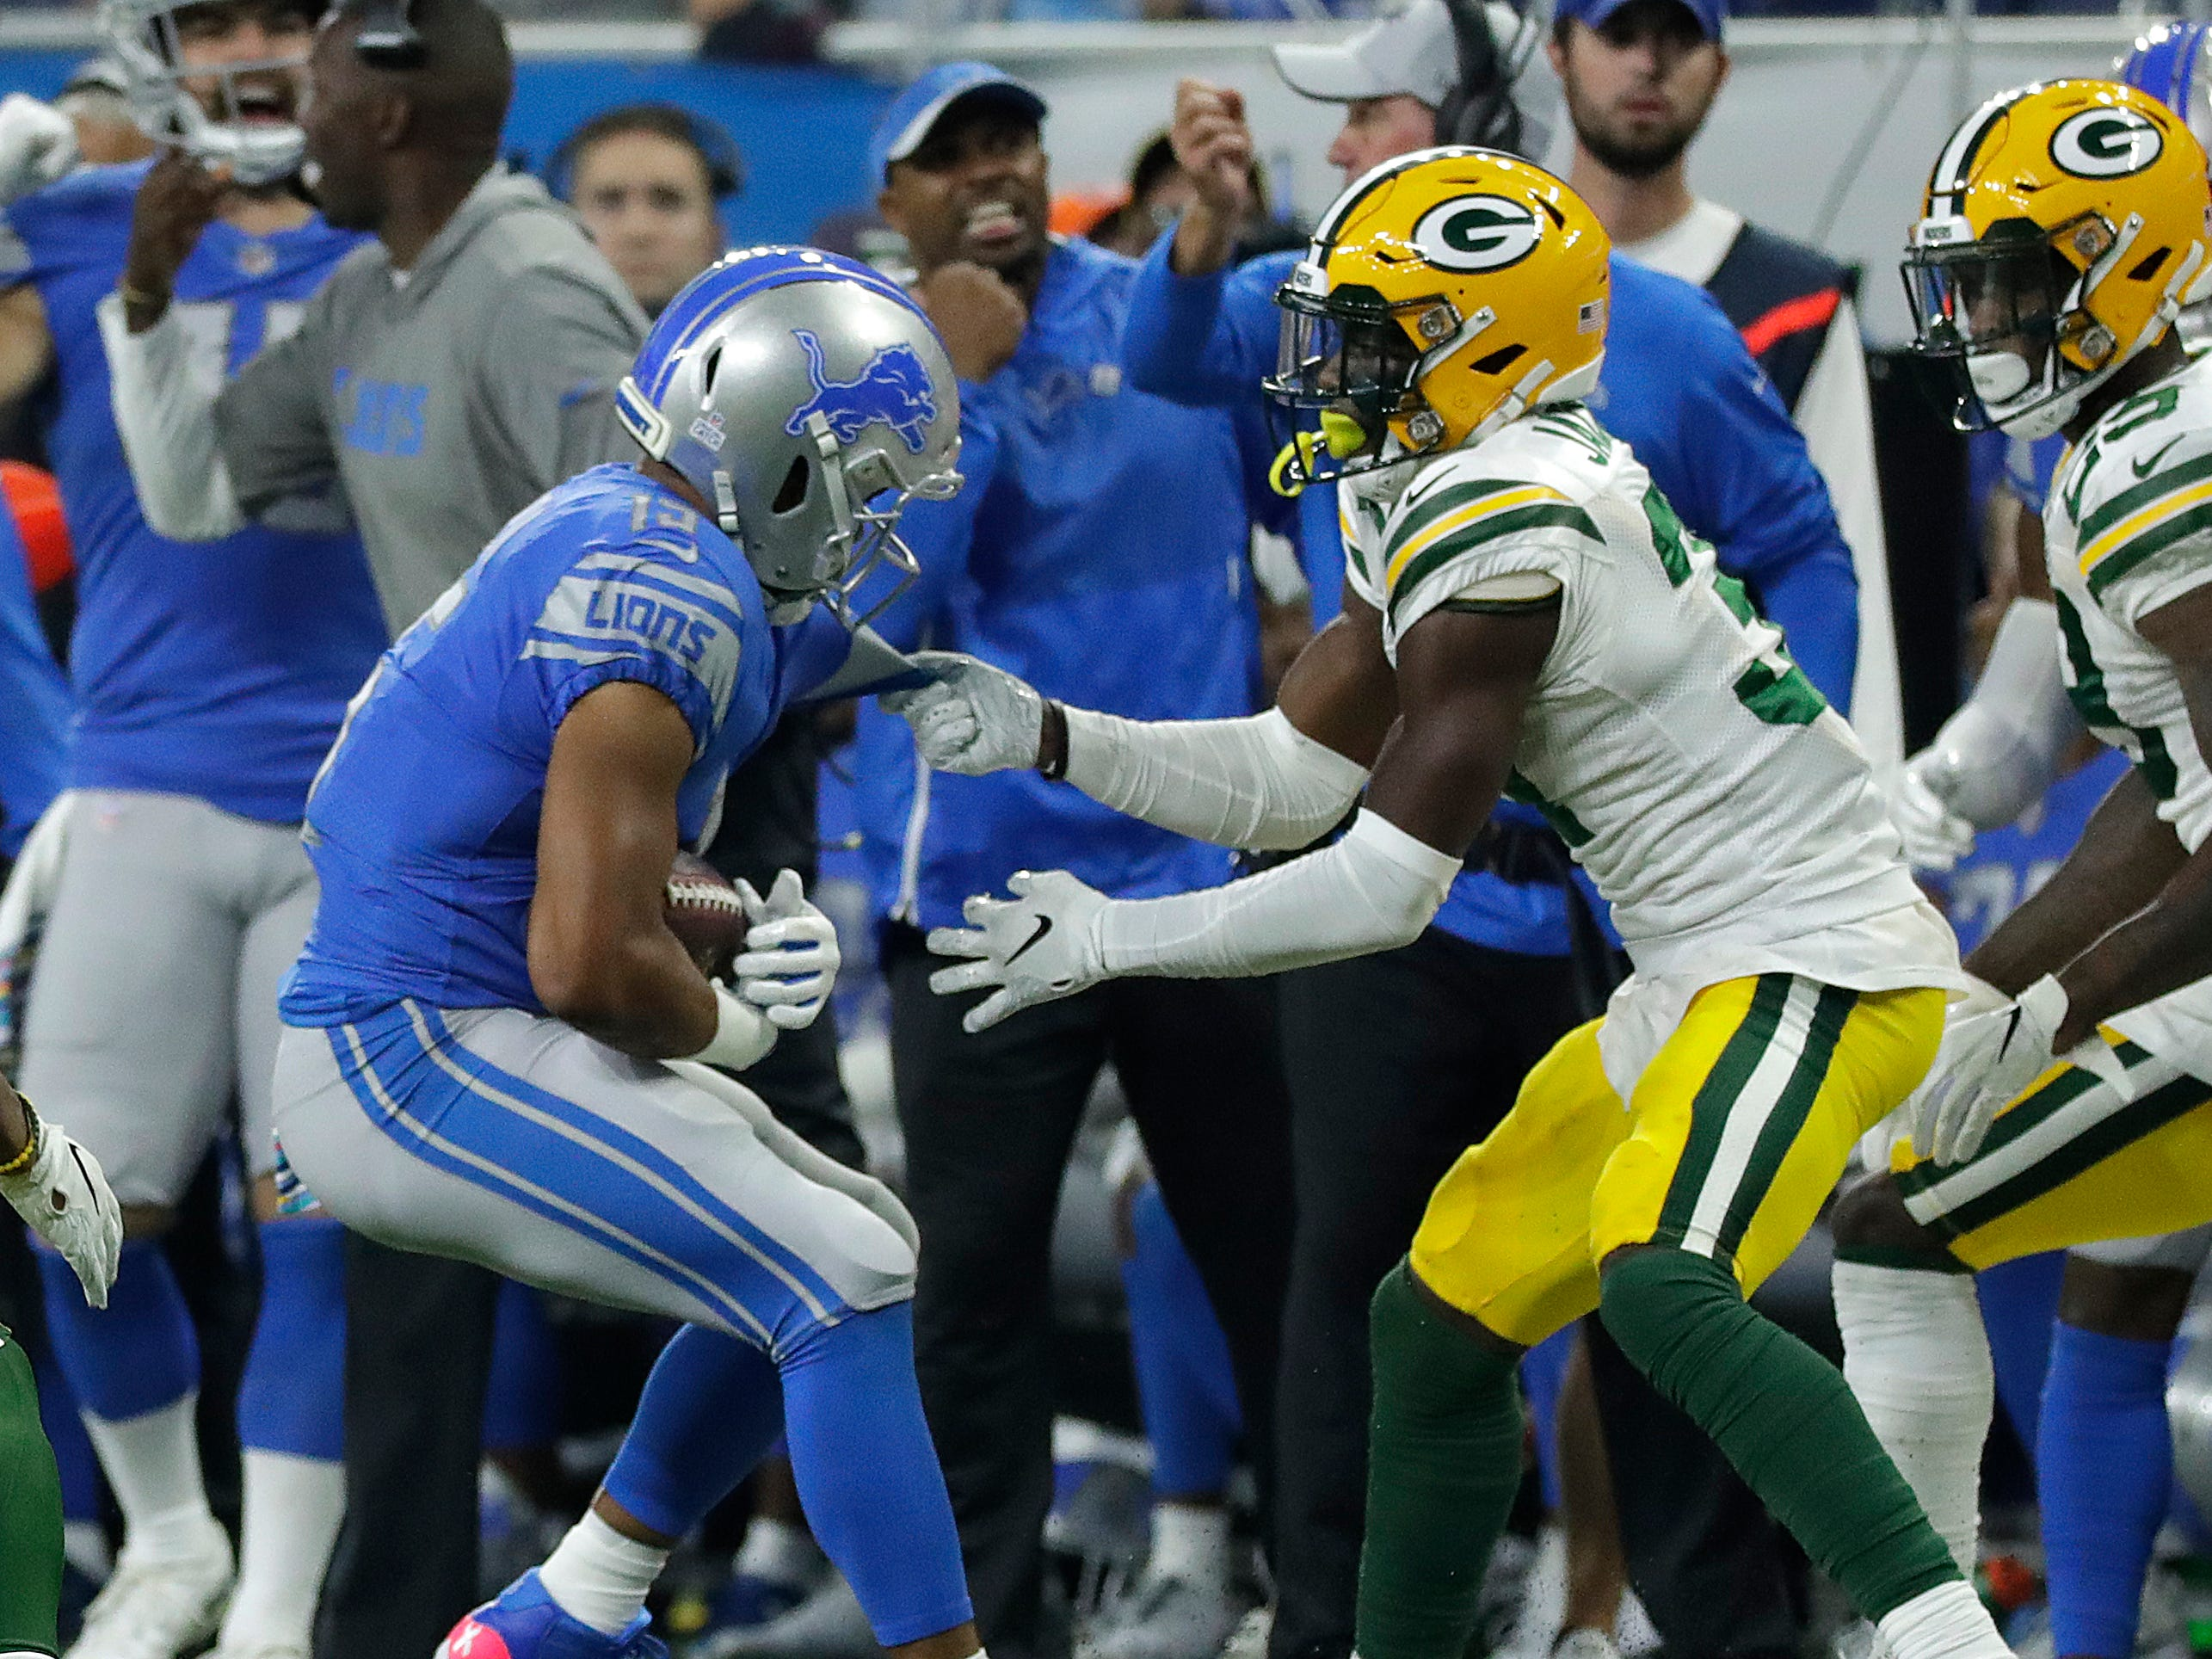 Penalties hurt the Green Bay Packers as cornerback Josh Jackson (37)] is called for face mask against Detroit Lions wide receiver Golden Tate (15) in the fourth quarter during the Green Bay Packers 31-23 loss to the Detroit Lions at Ford Field, Detroit, Sunday, October 7, 2018.   Rick Wood/Milwaukee Journal Sentinel. USA